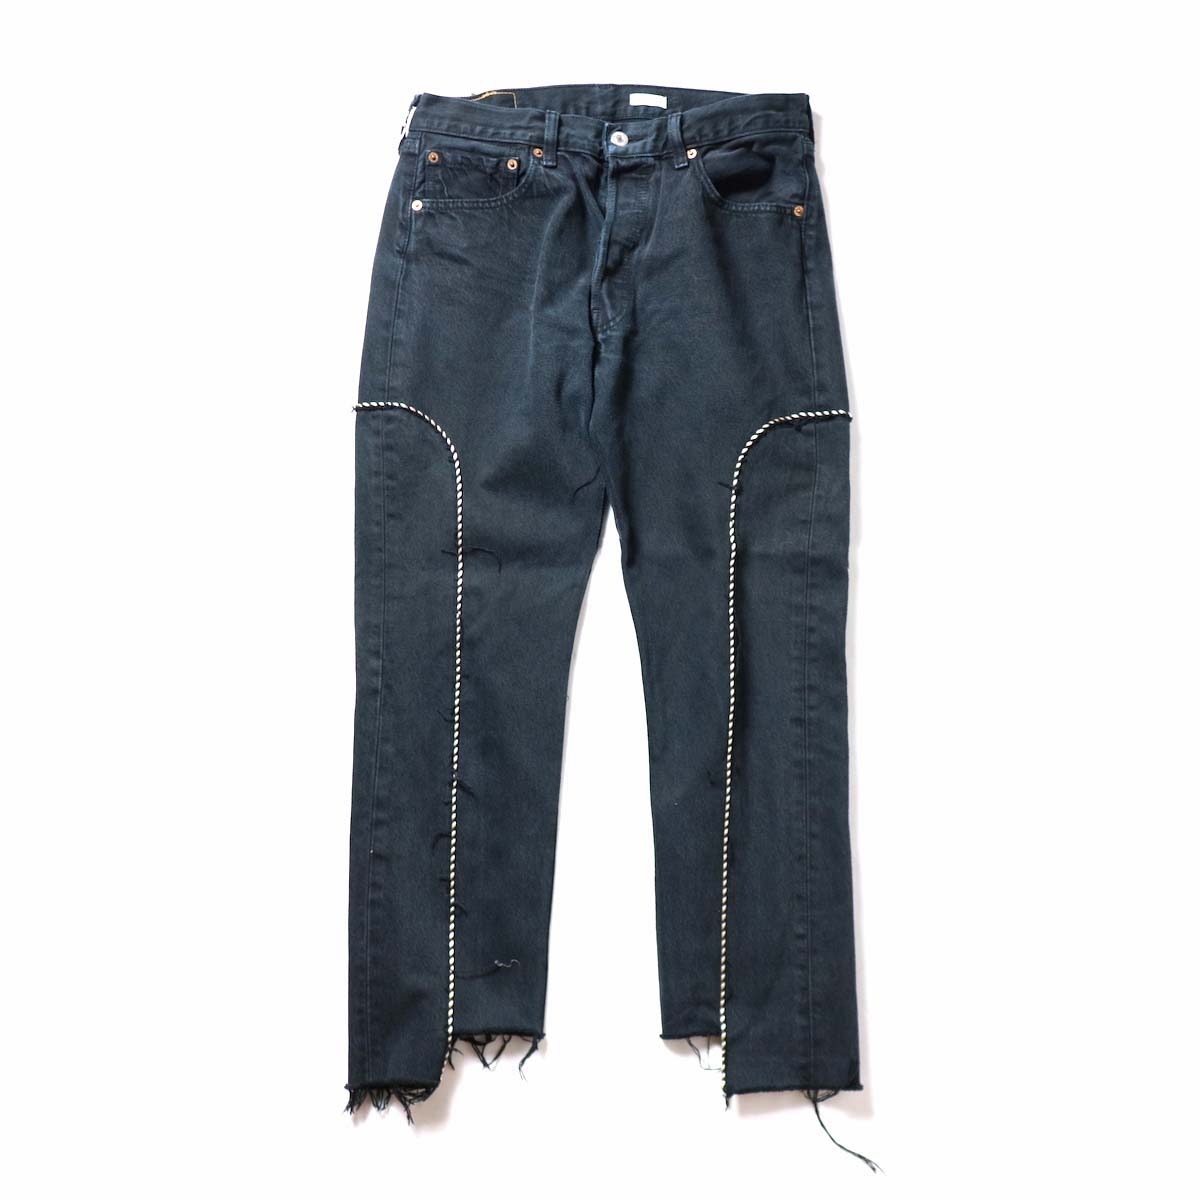 OLD PARK / Western Jeans Black (Msize-G)正面